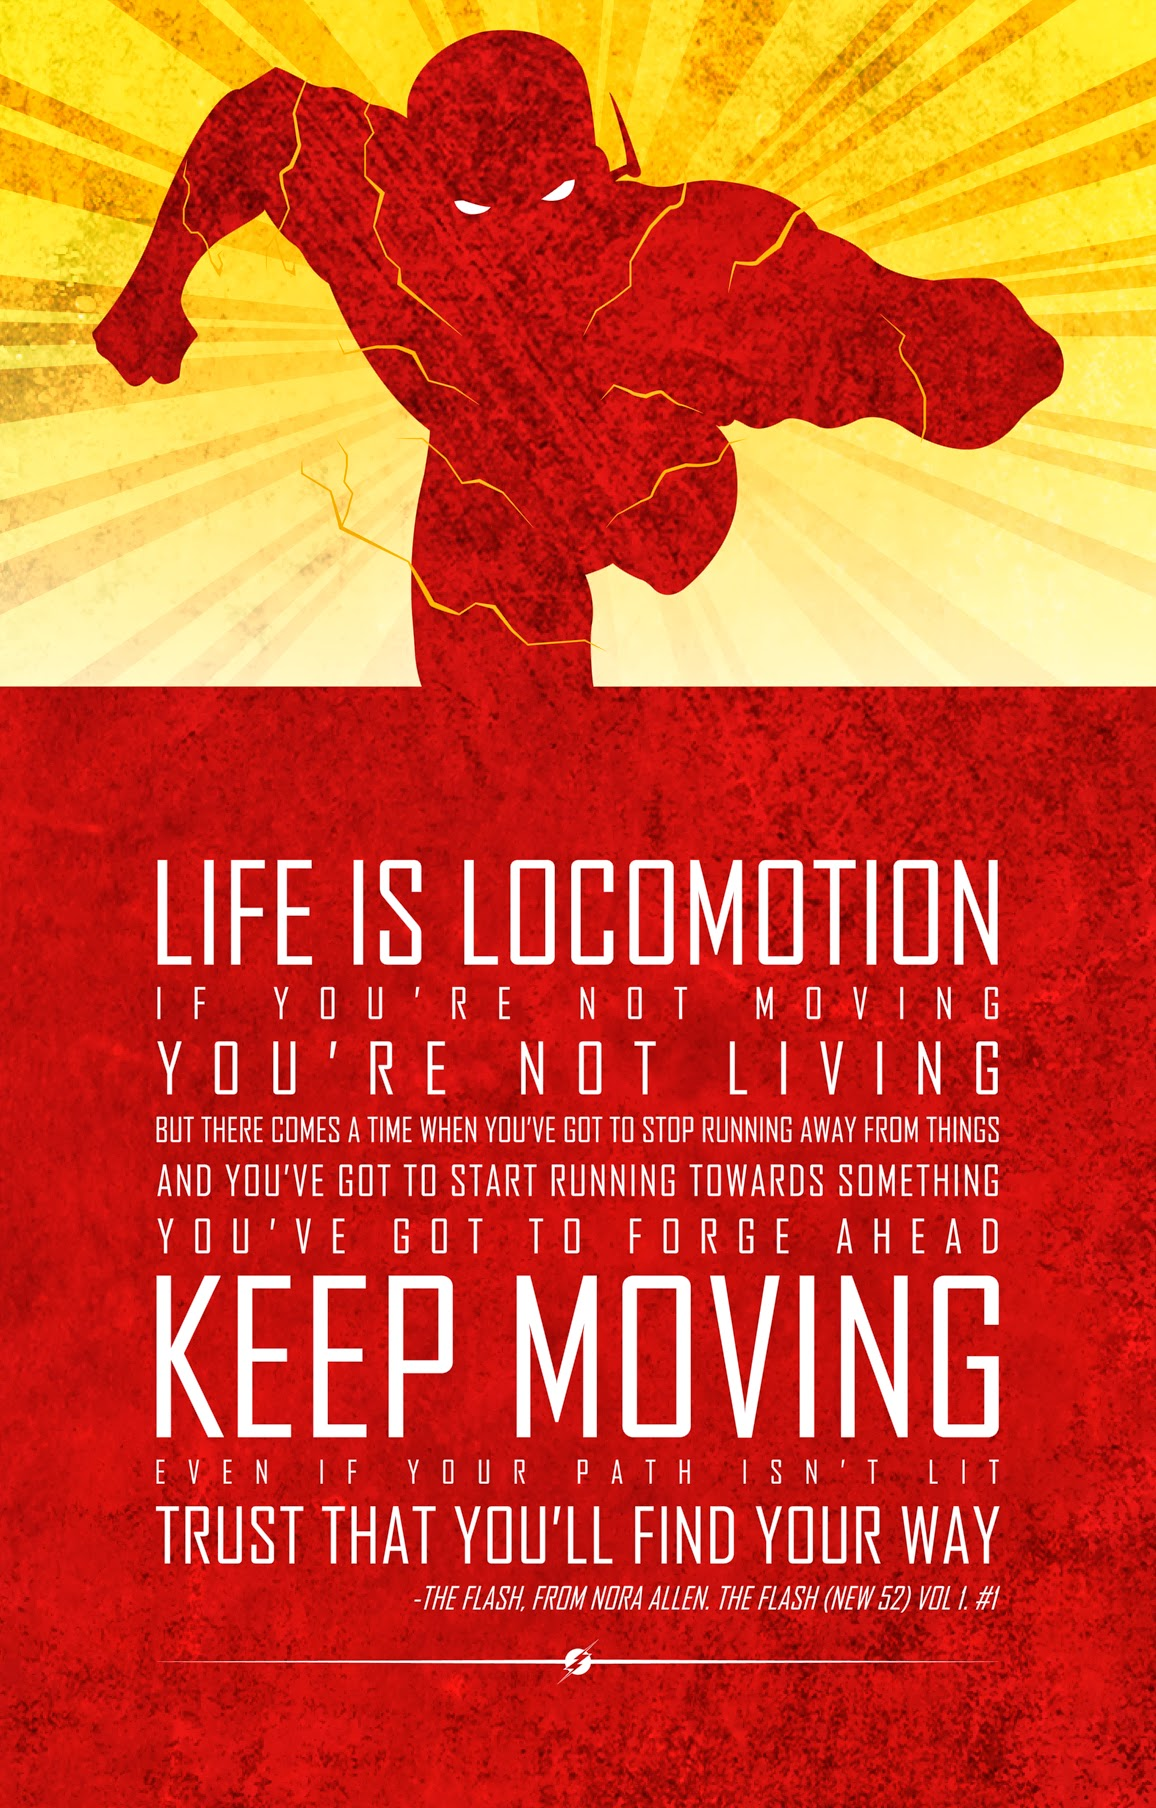 [Image] Superhero comics always motivate me. Here's a quote from The Flash.